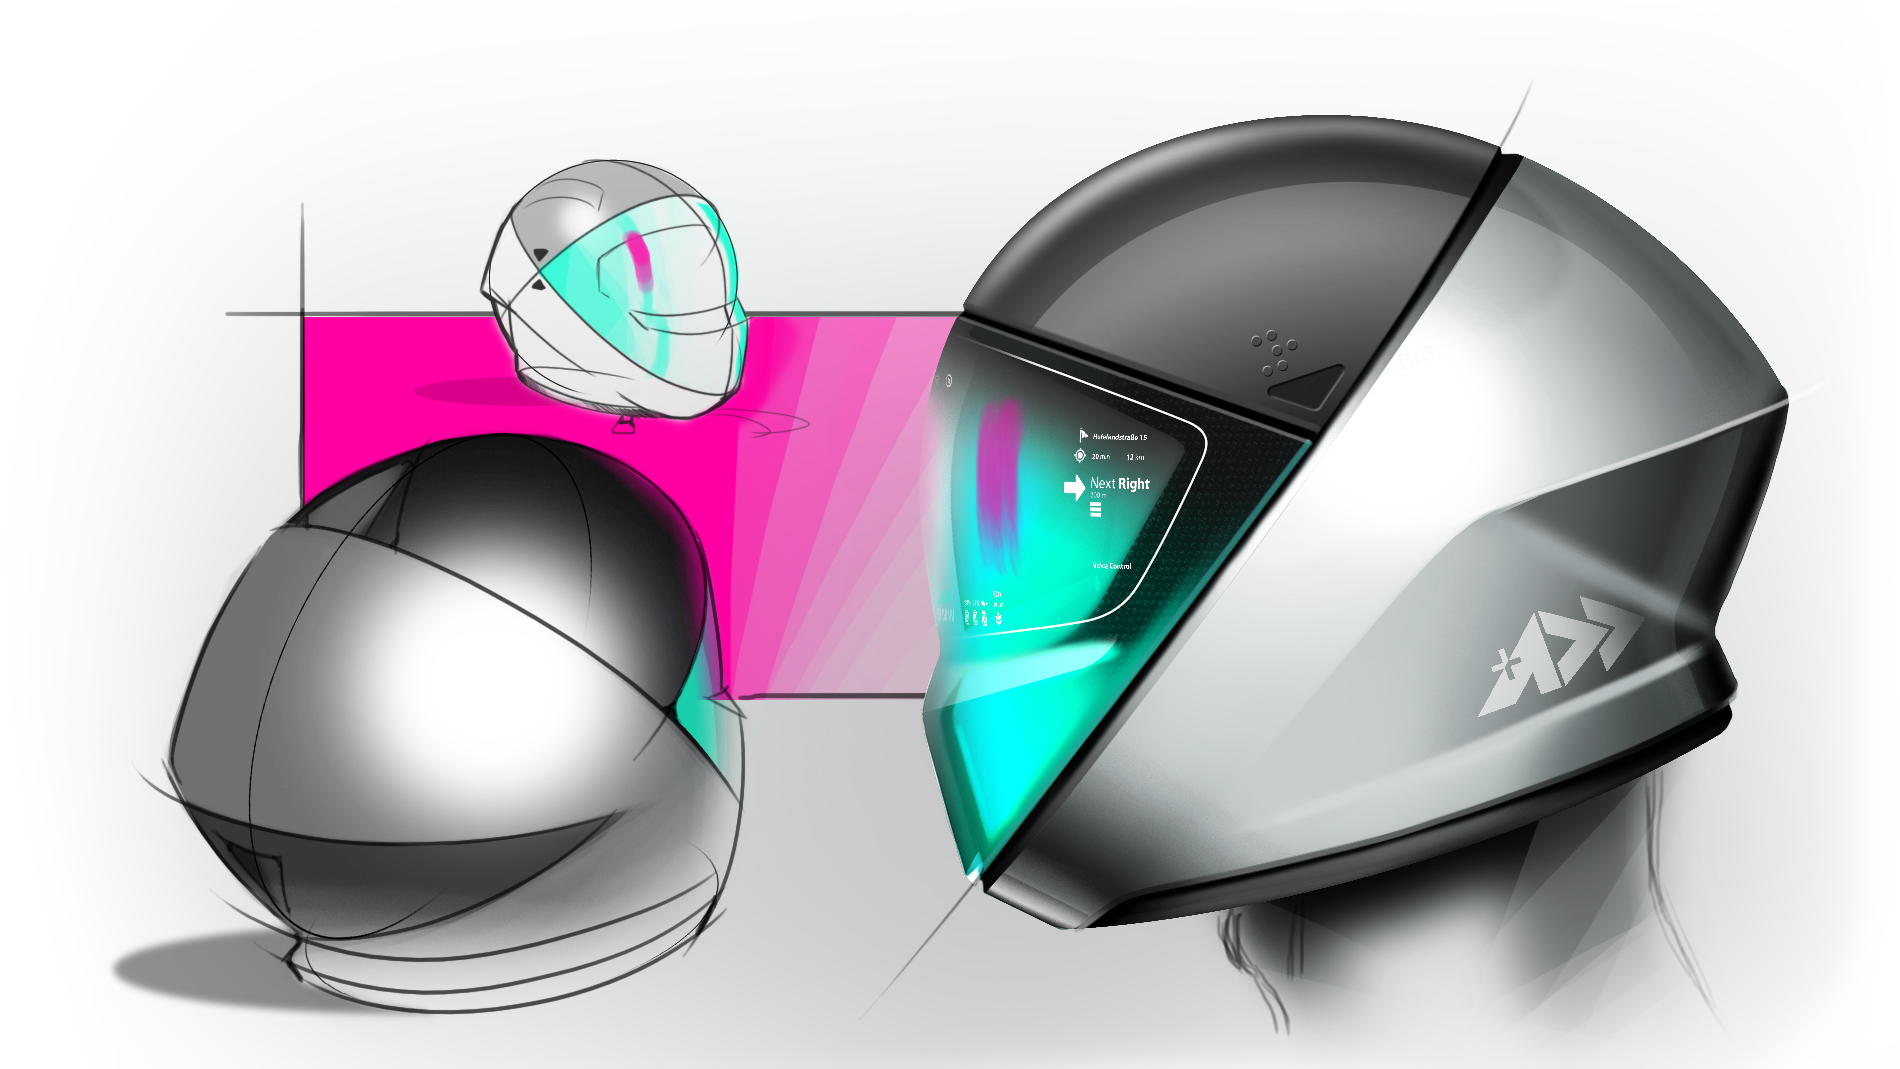 design sketch of a grey helmet with green vizor in three stept on white pink background